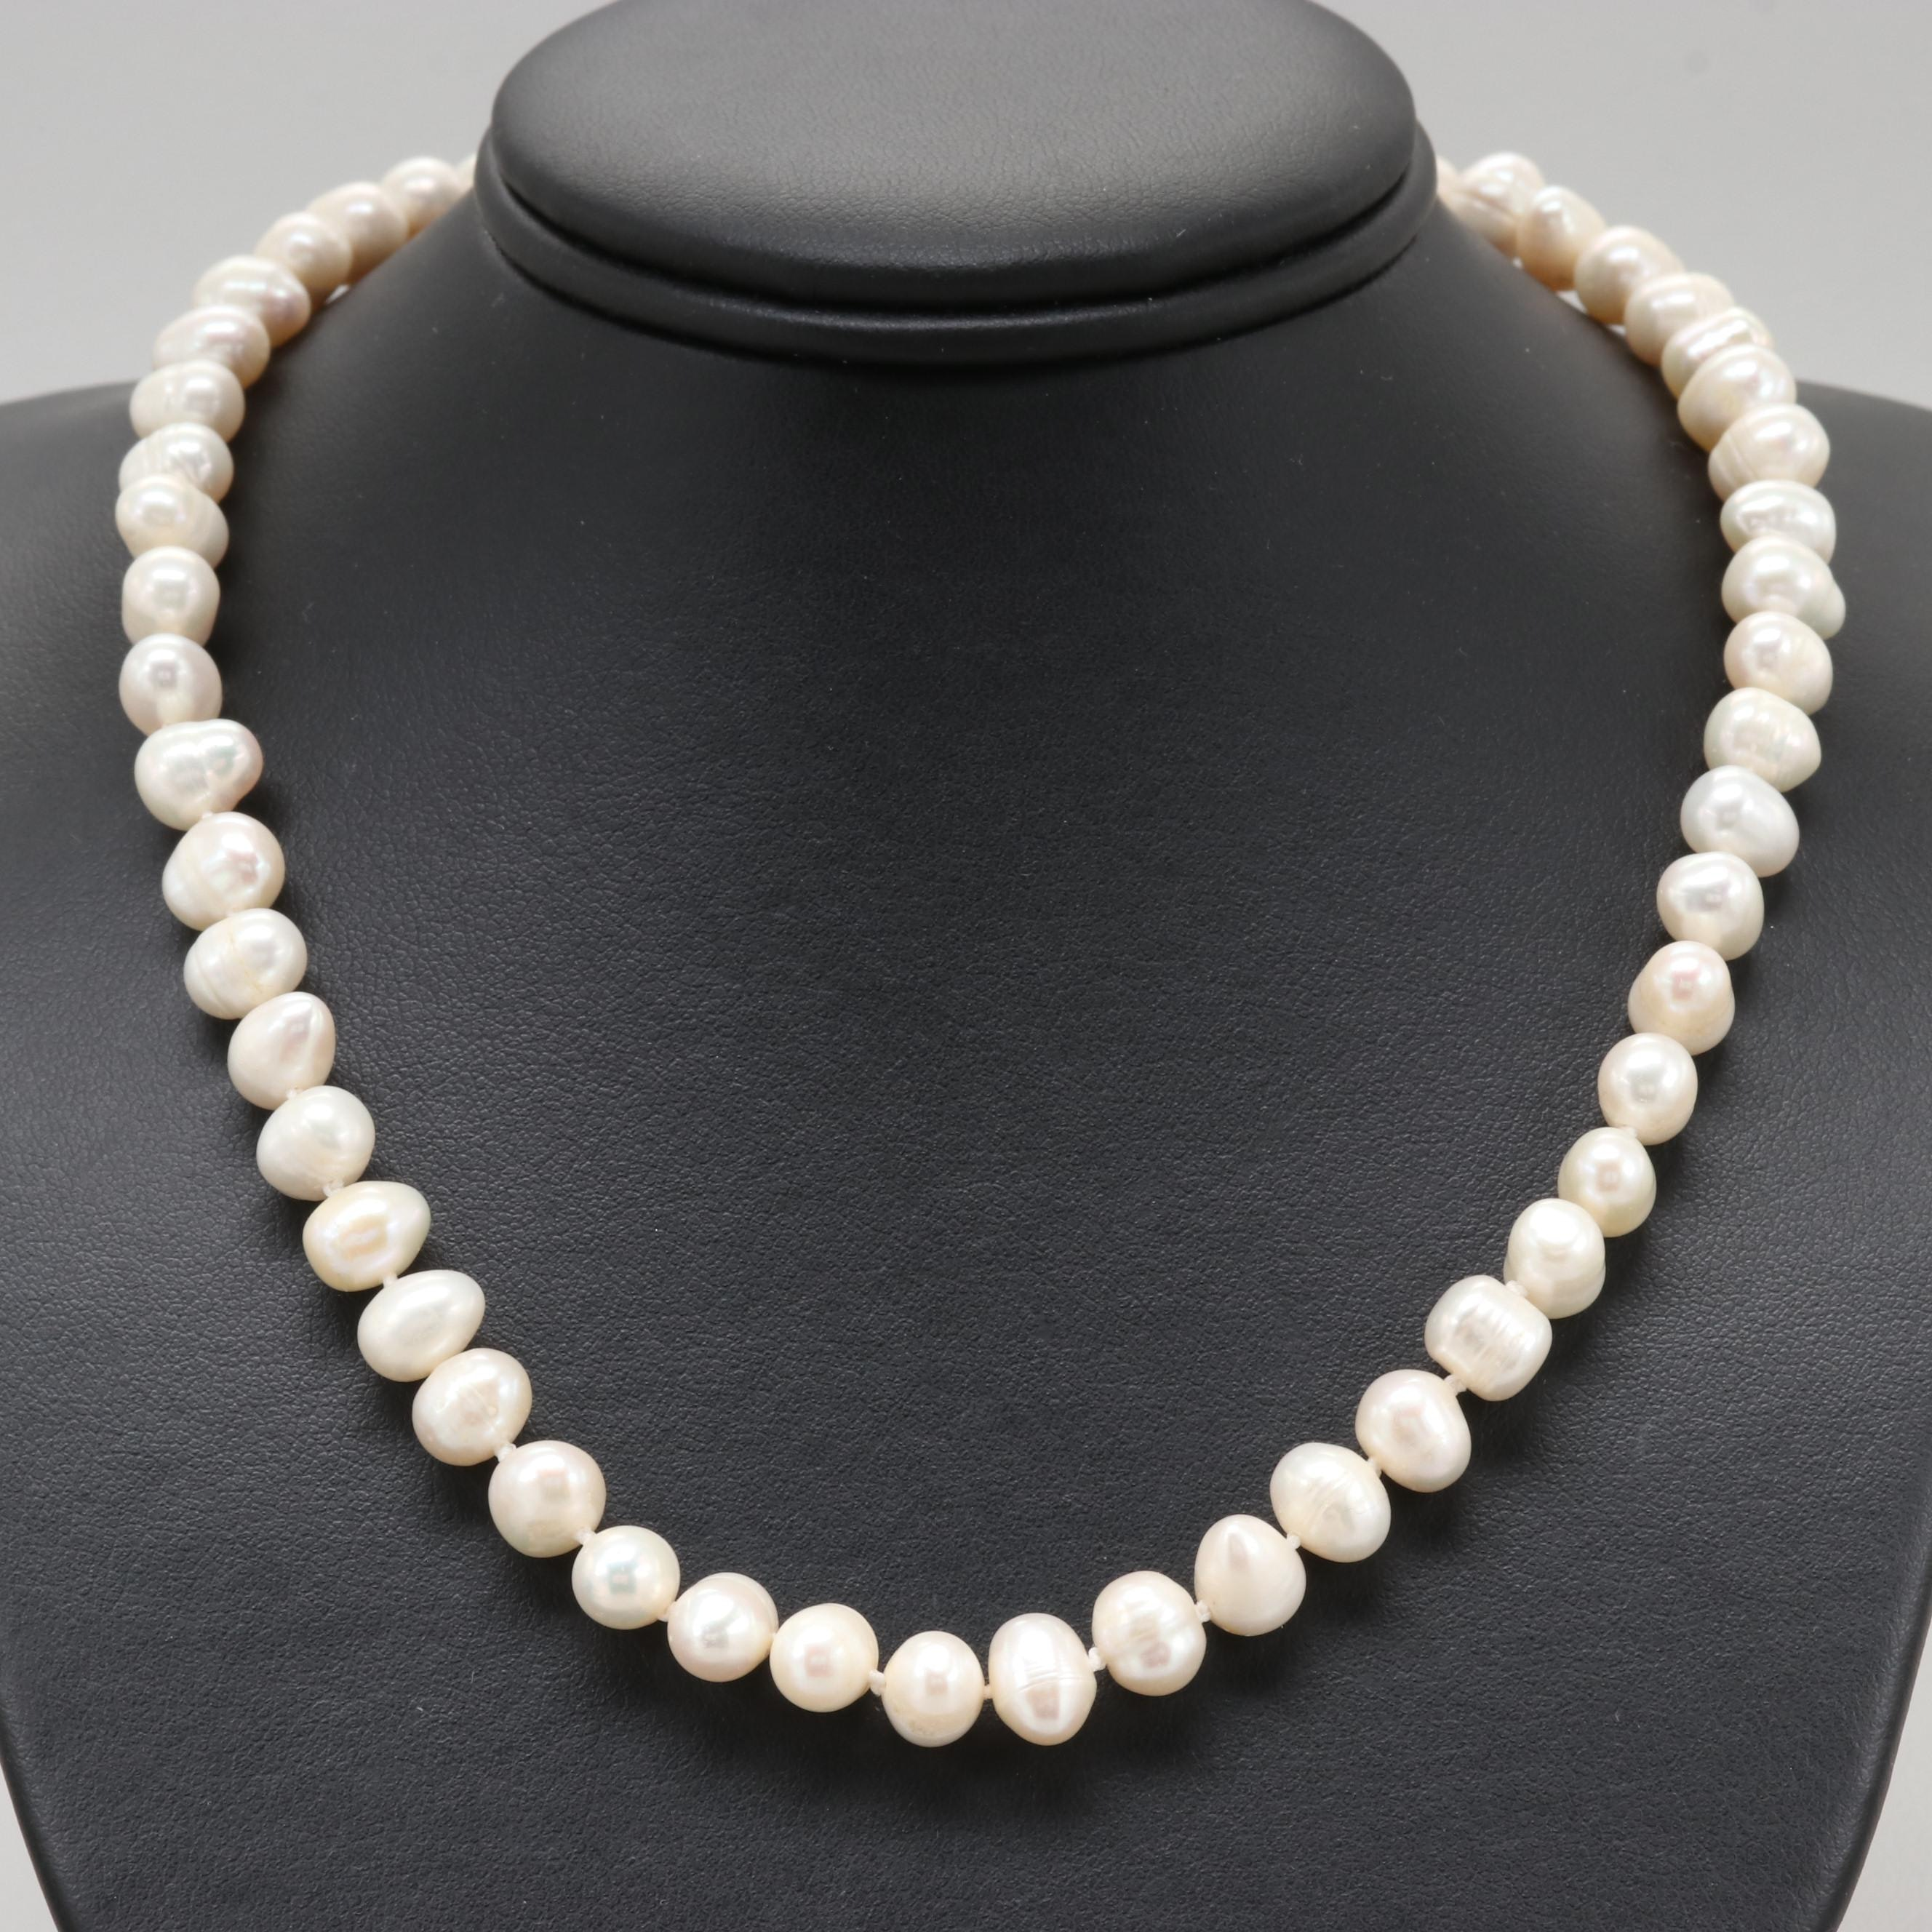 14K Yellow Gold Clasped Cultured Freshwater Pearl Necklace